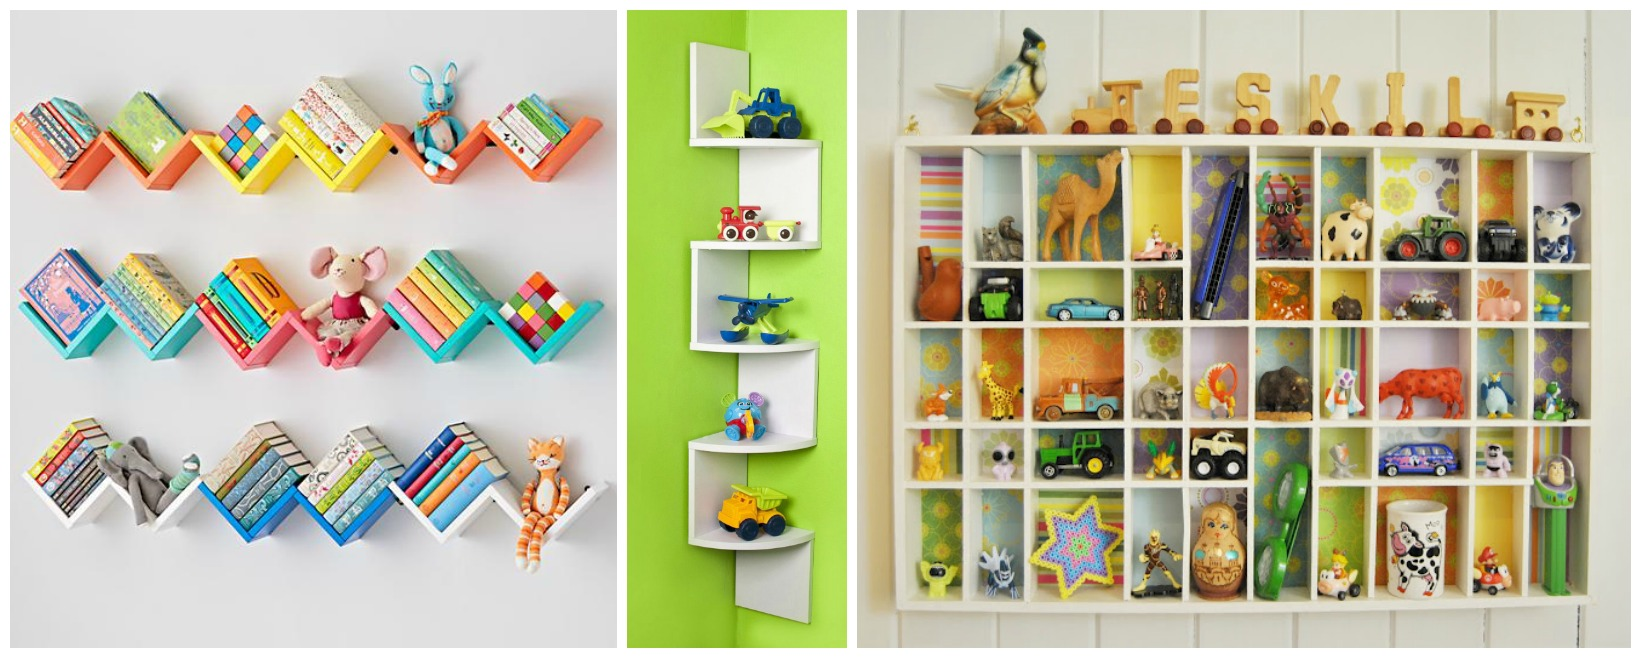 Wall Decor Ideas: Beautiful Shelves Designs for Kids\u0027 Room | My ...